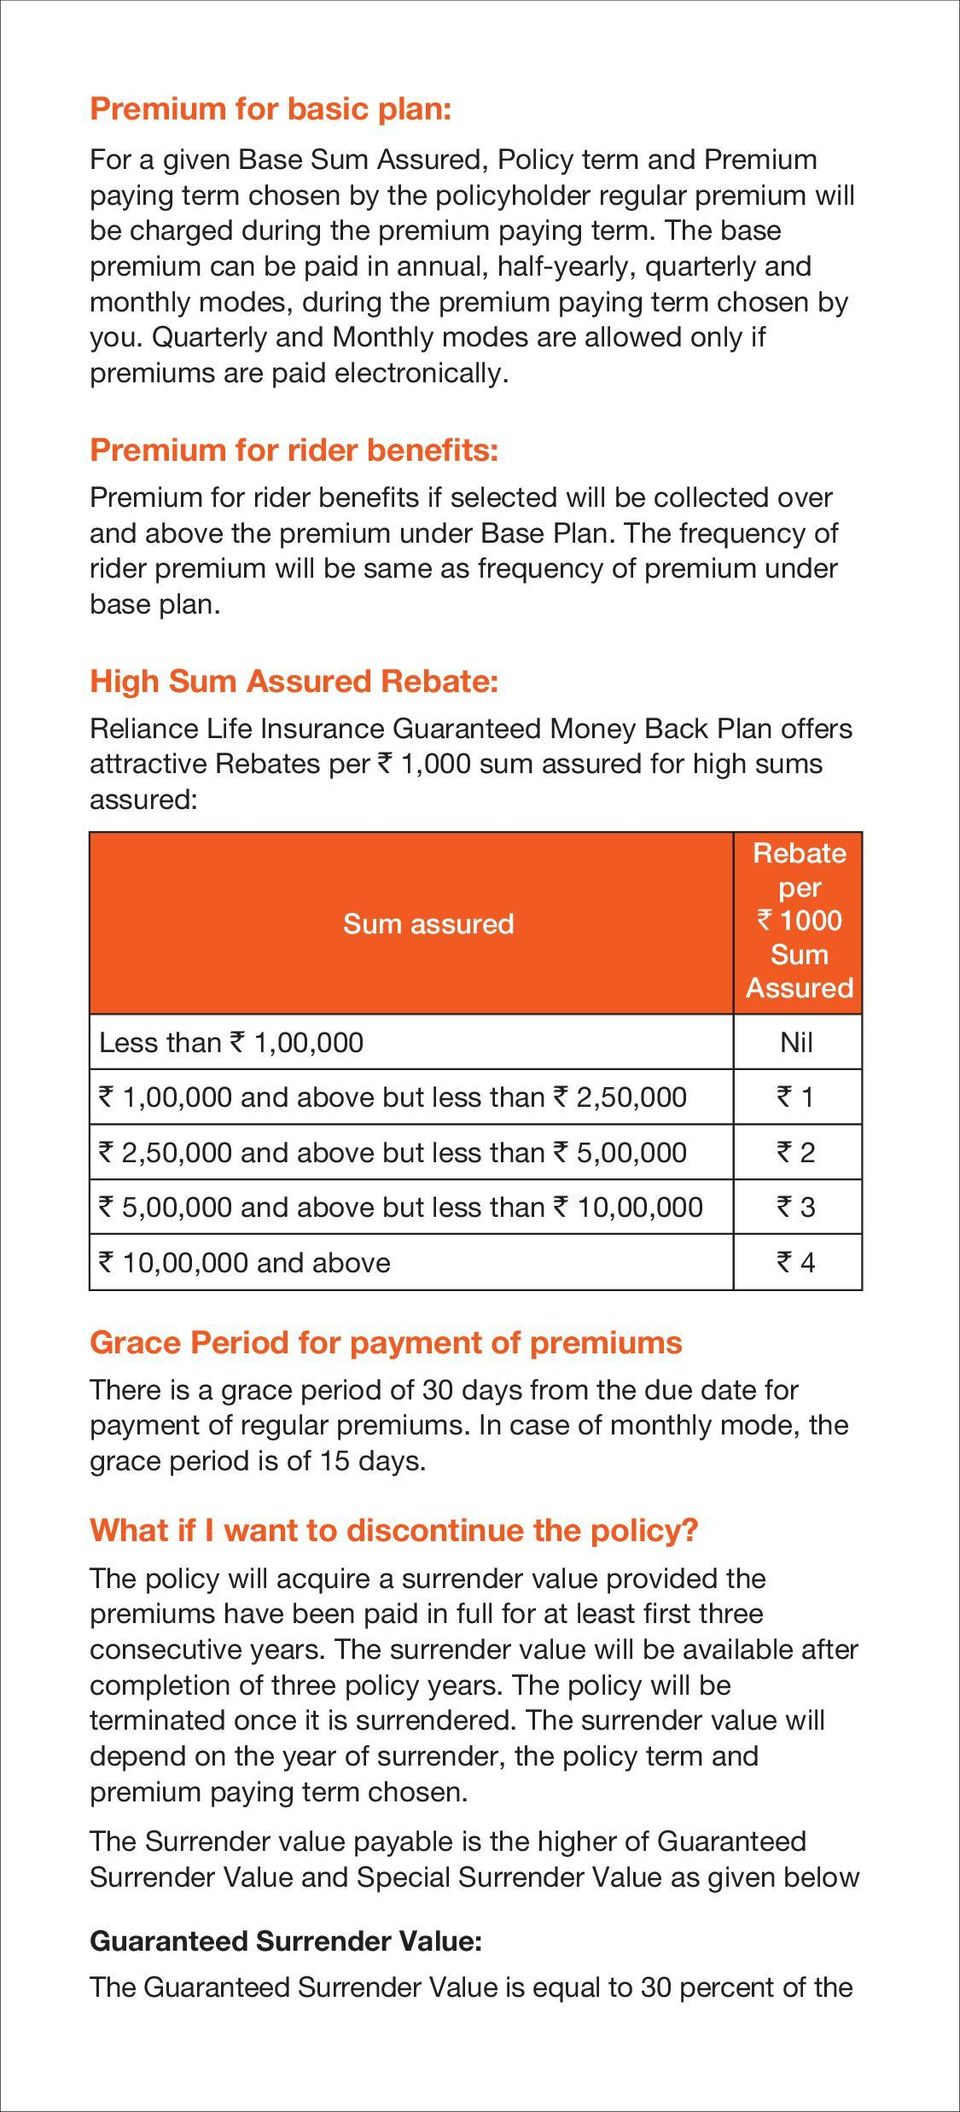 Quarterly and Monthly modes are allowed only if premiums are paid electronically.